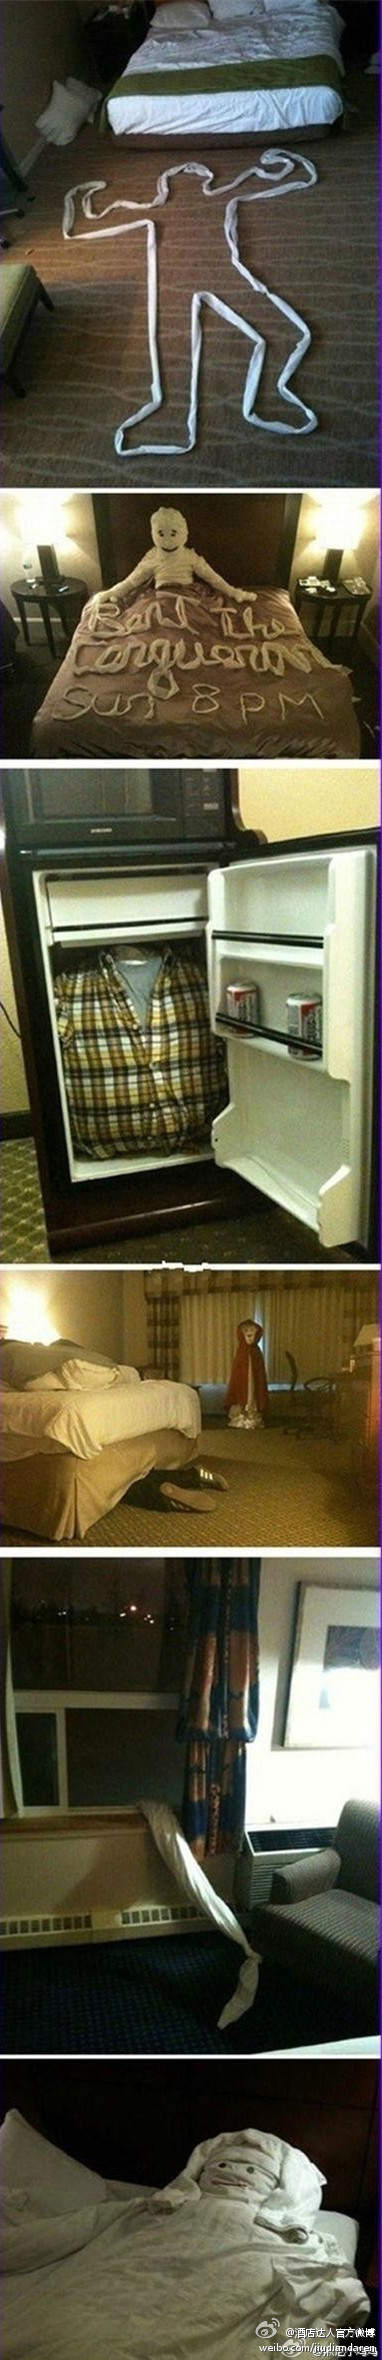 What you can do when check out from hotel... ;)